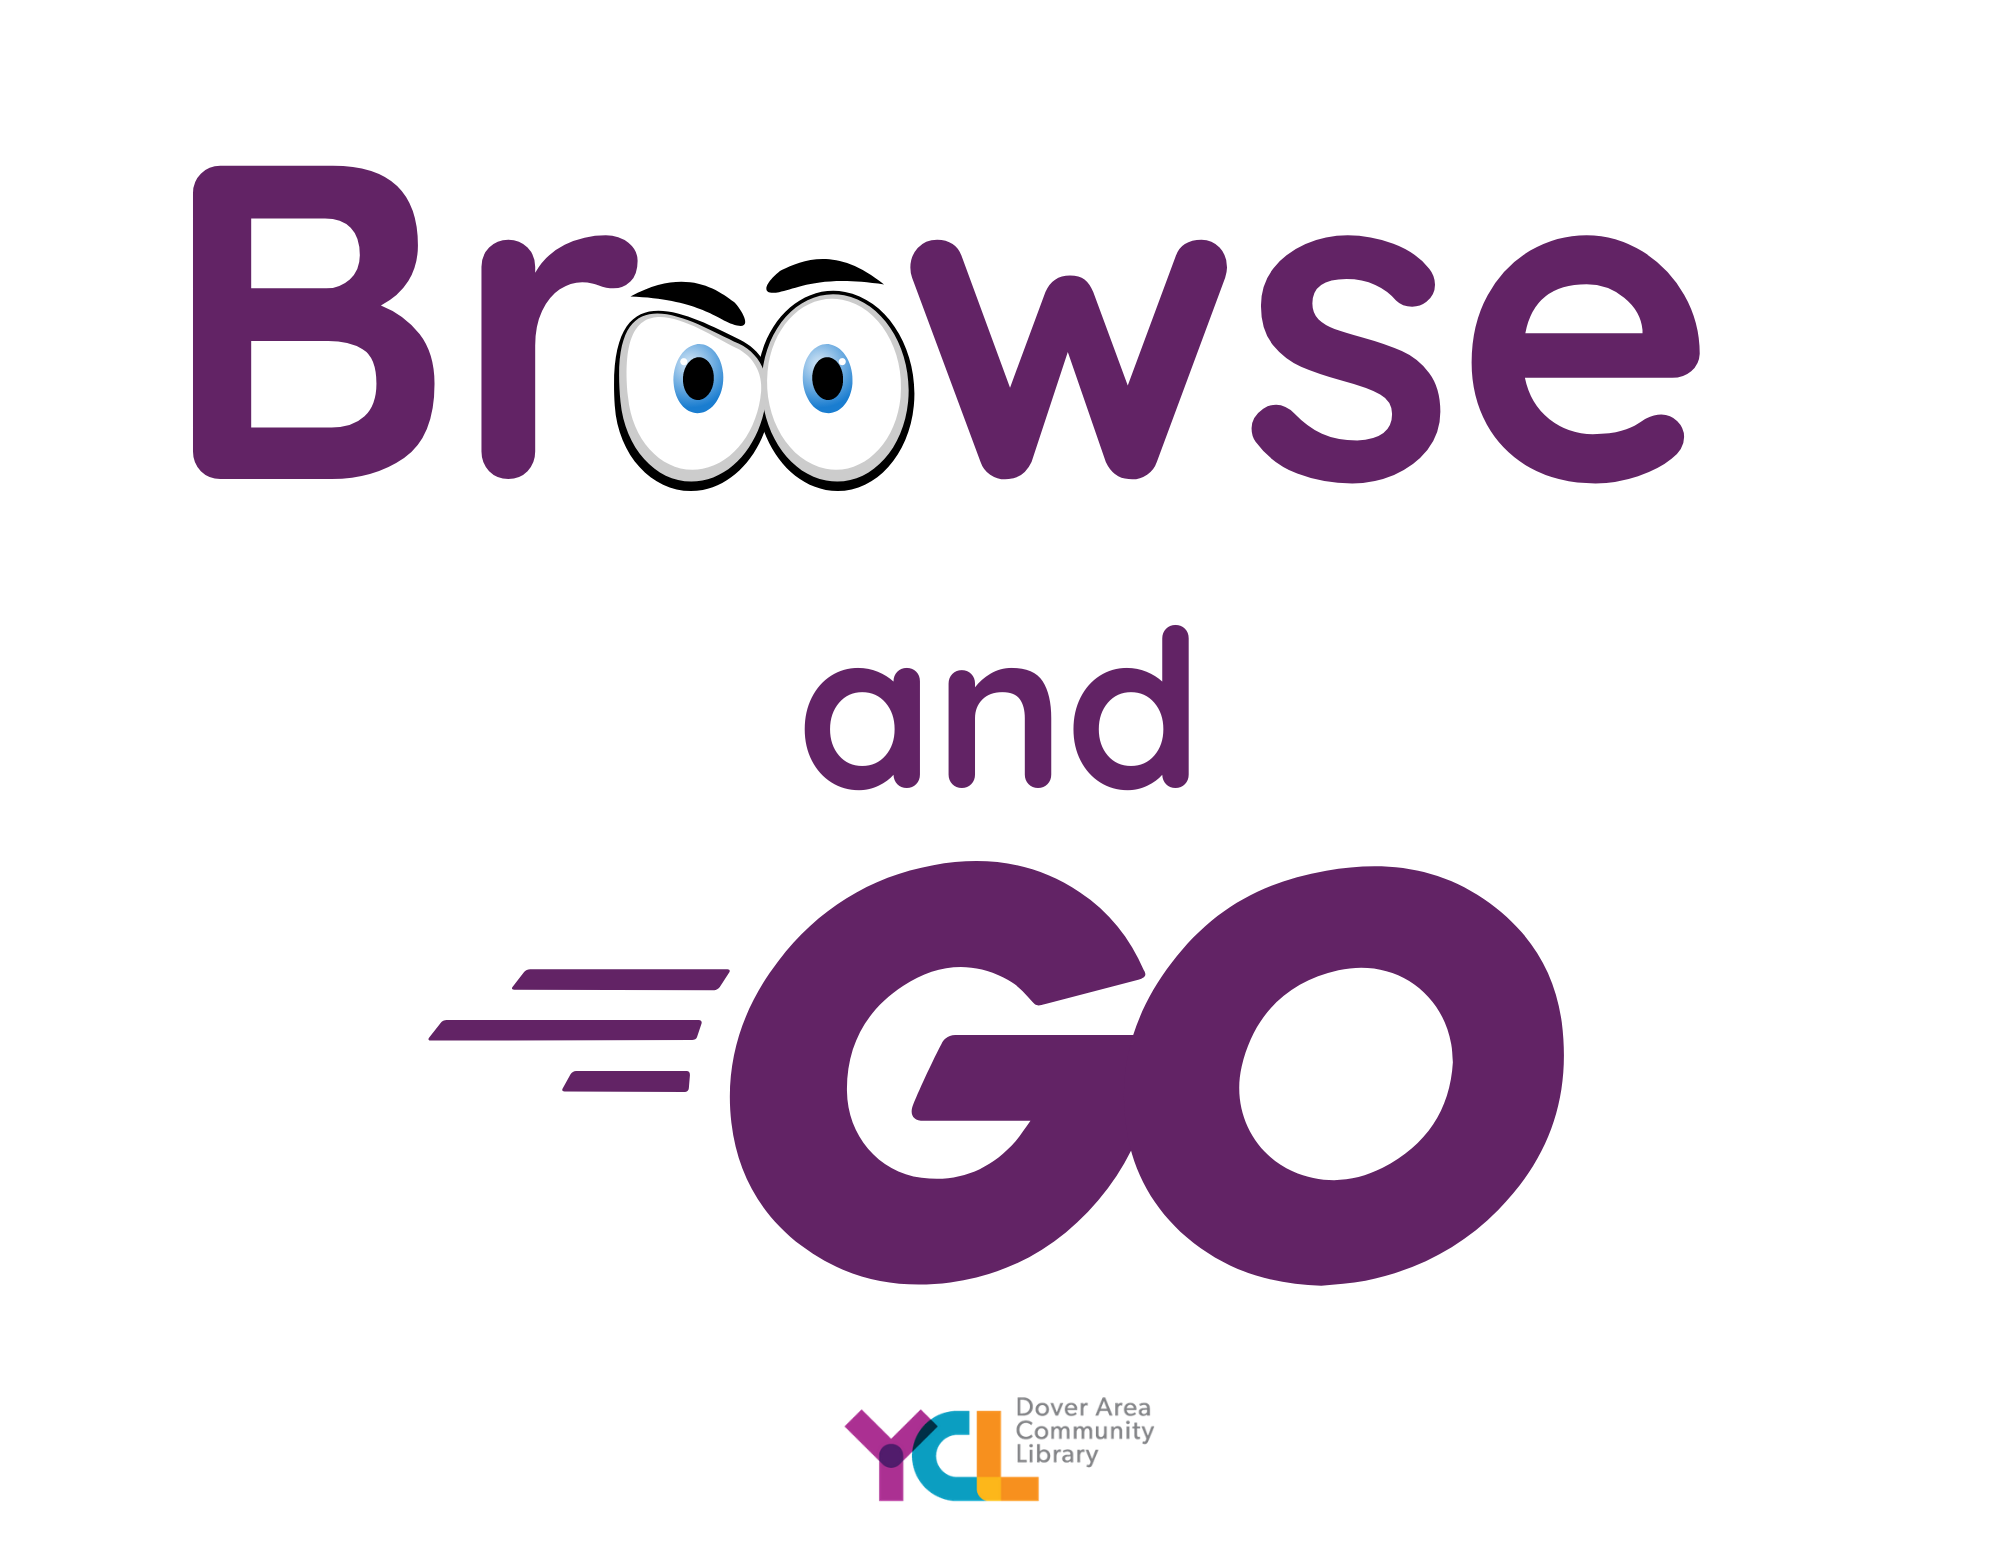 Browse and Go!